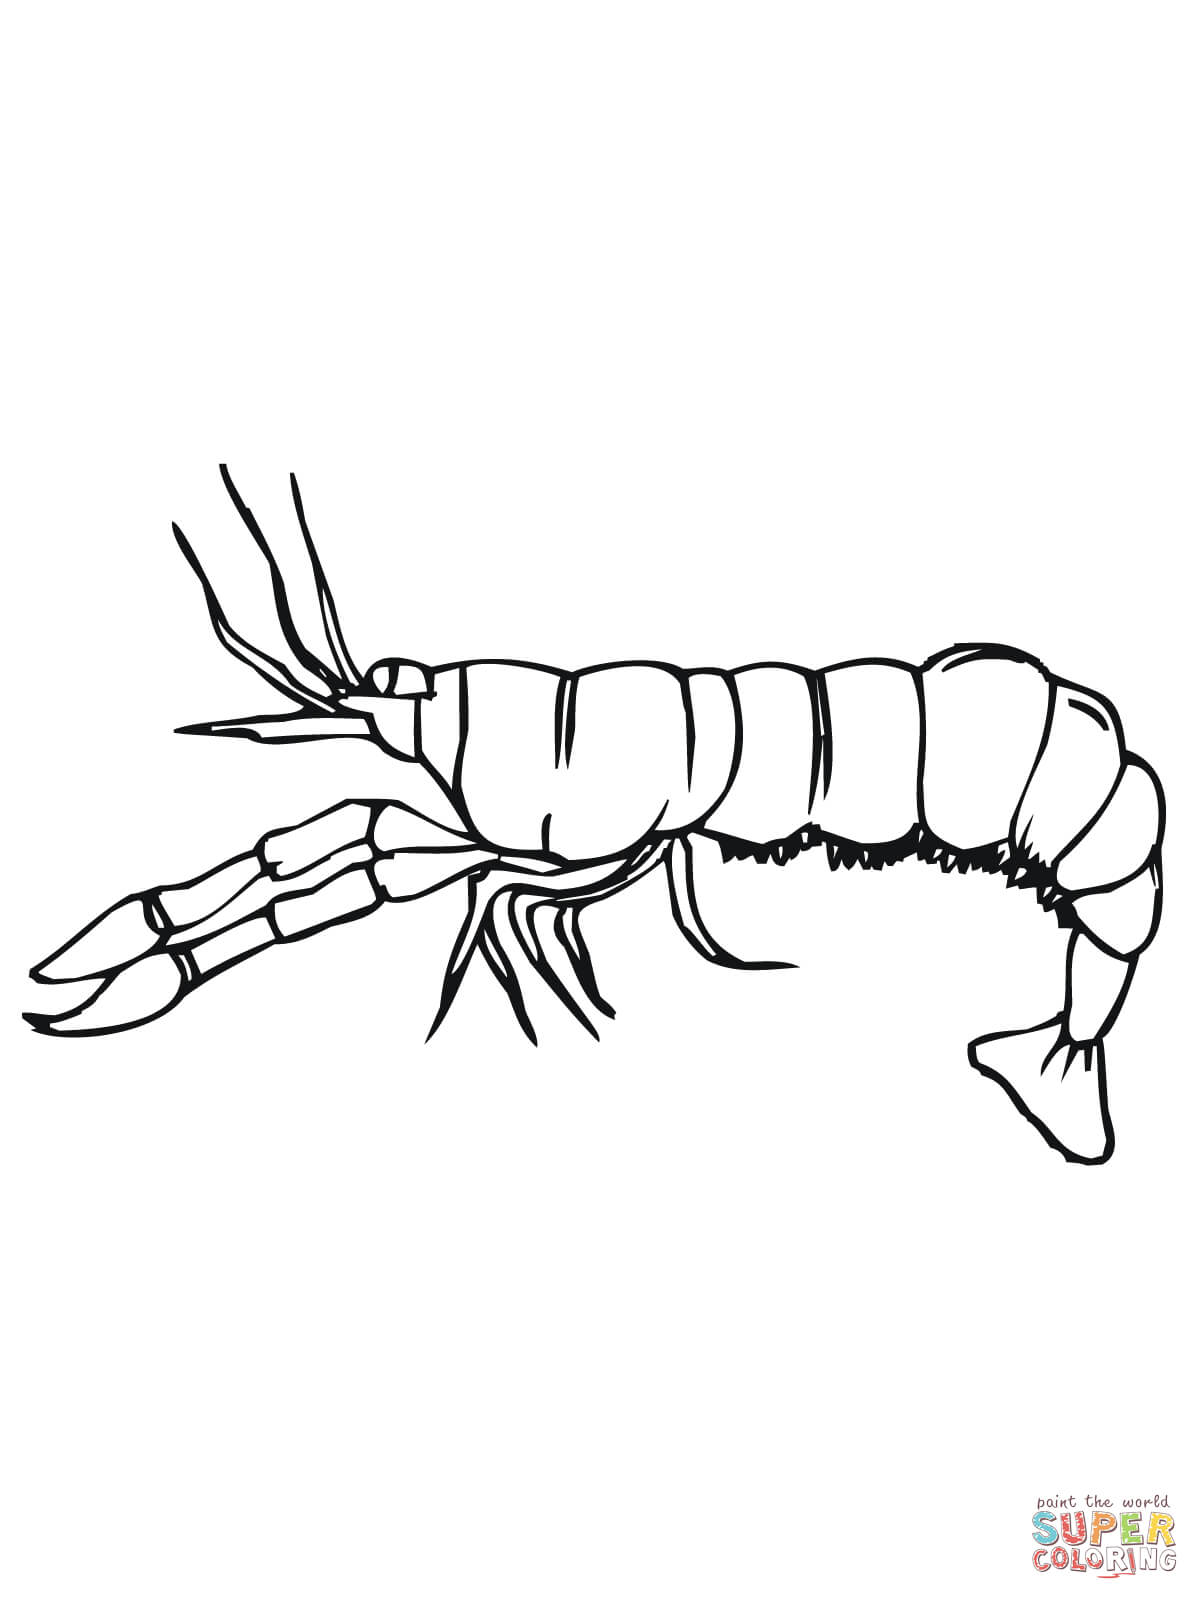 Crawfish Side View Coloring Page